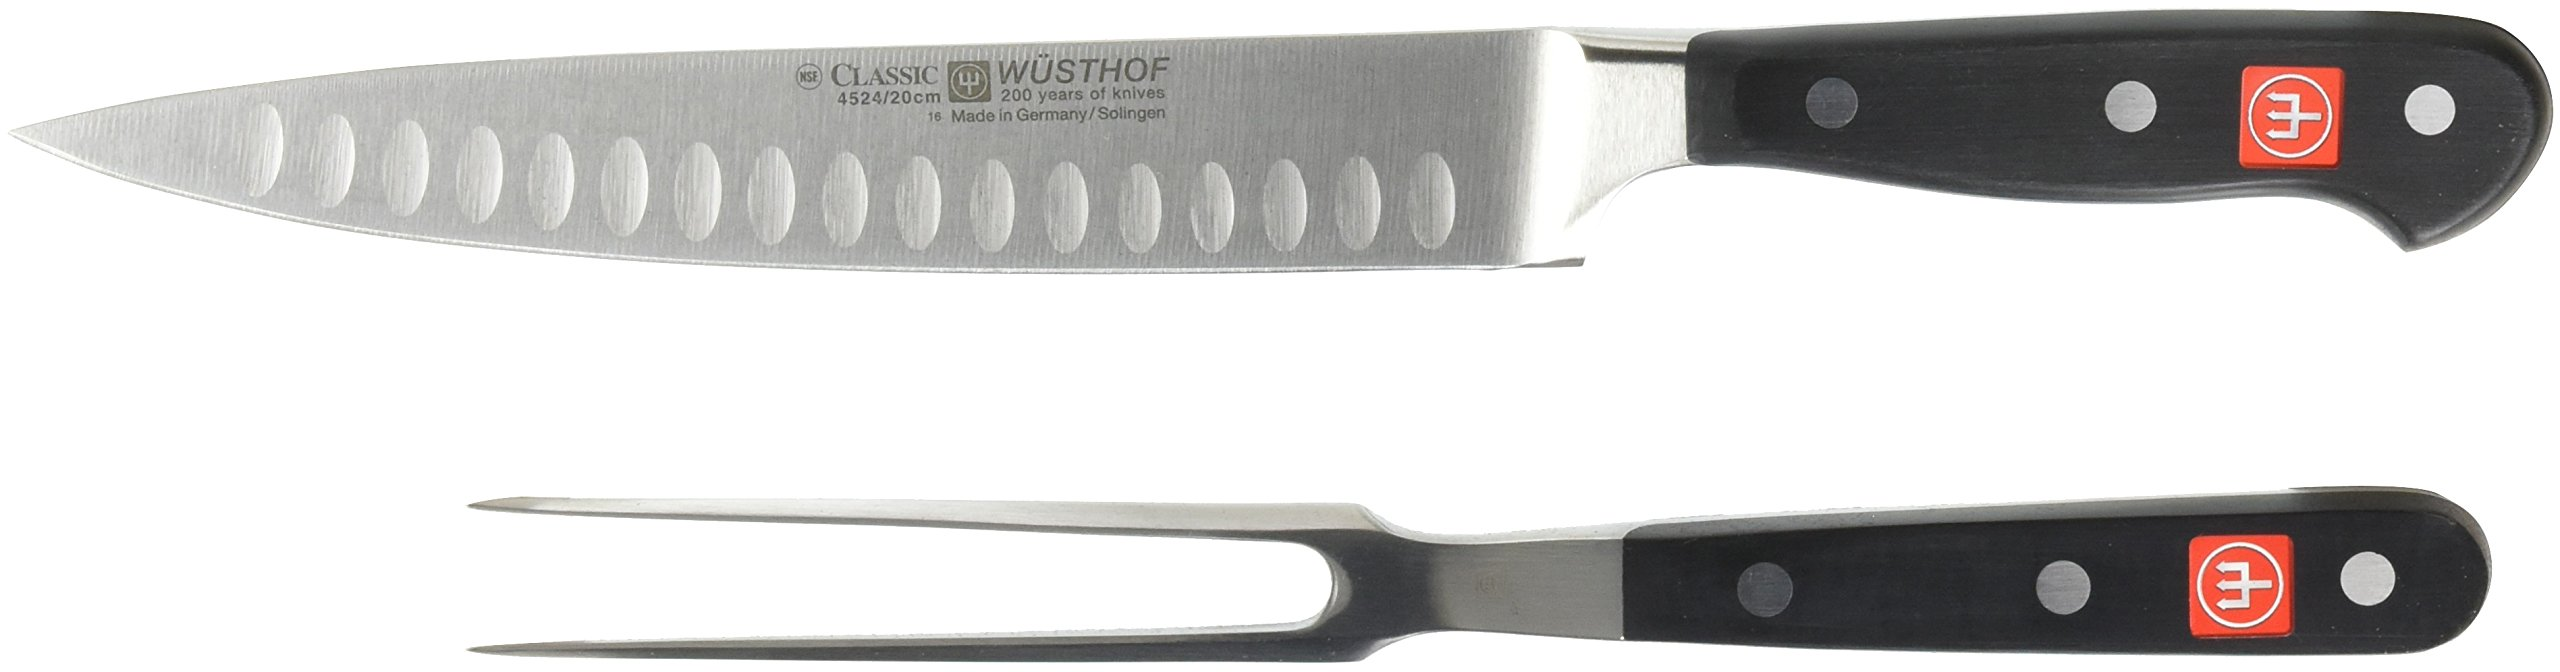 Wusthof 9740-1 CLASSIC Two Piece Carving Set, 2, Black, Stainless Steel by Wüsthof